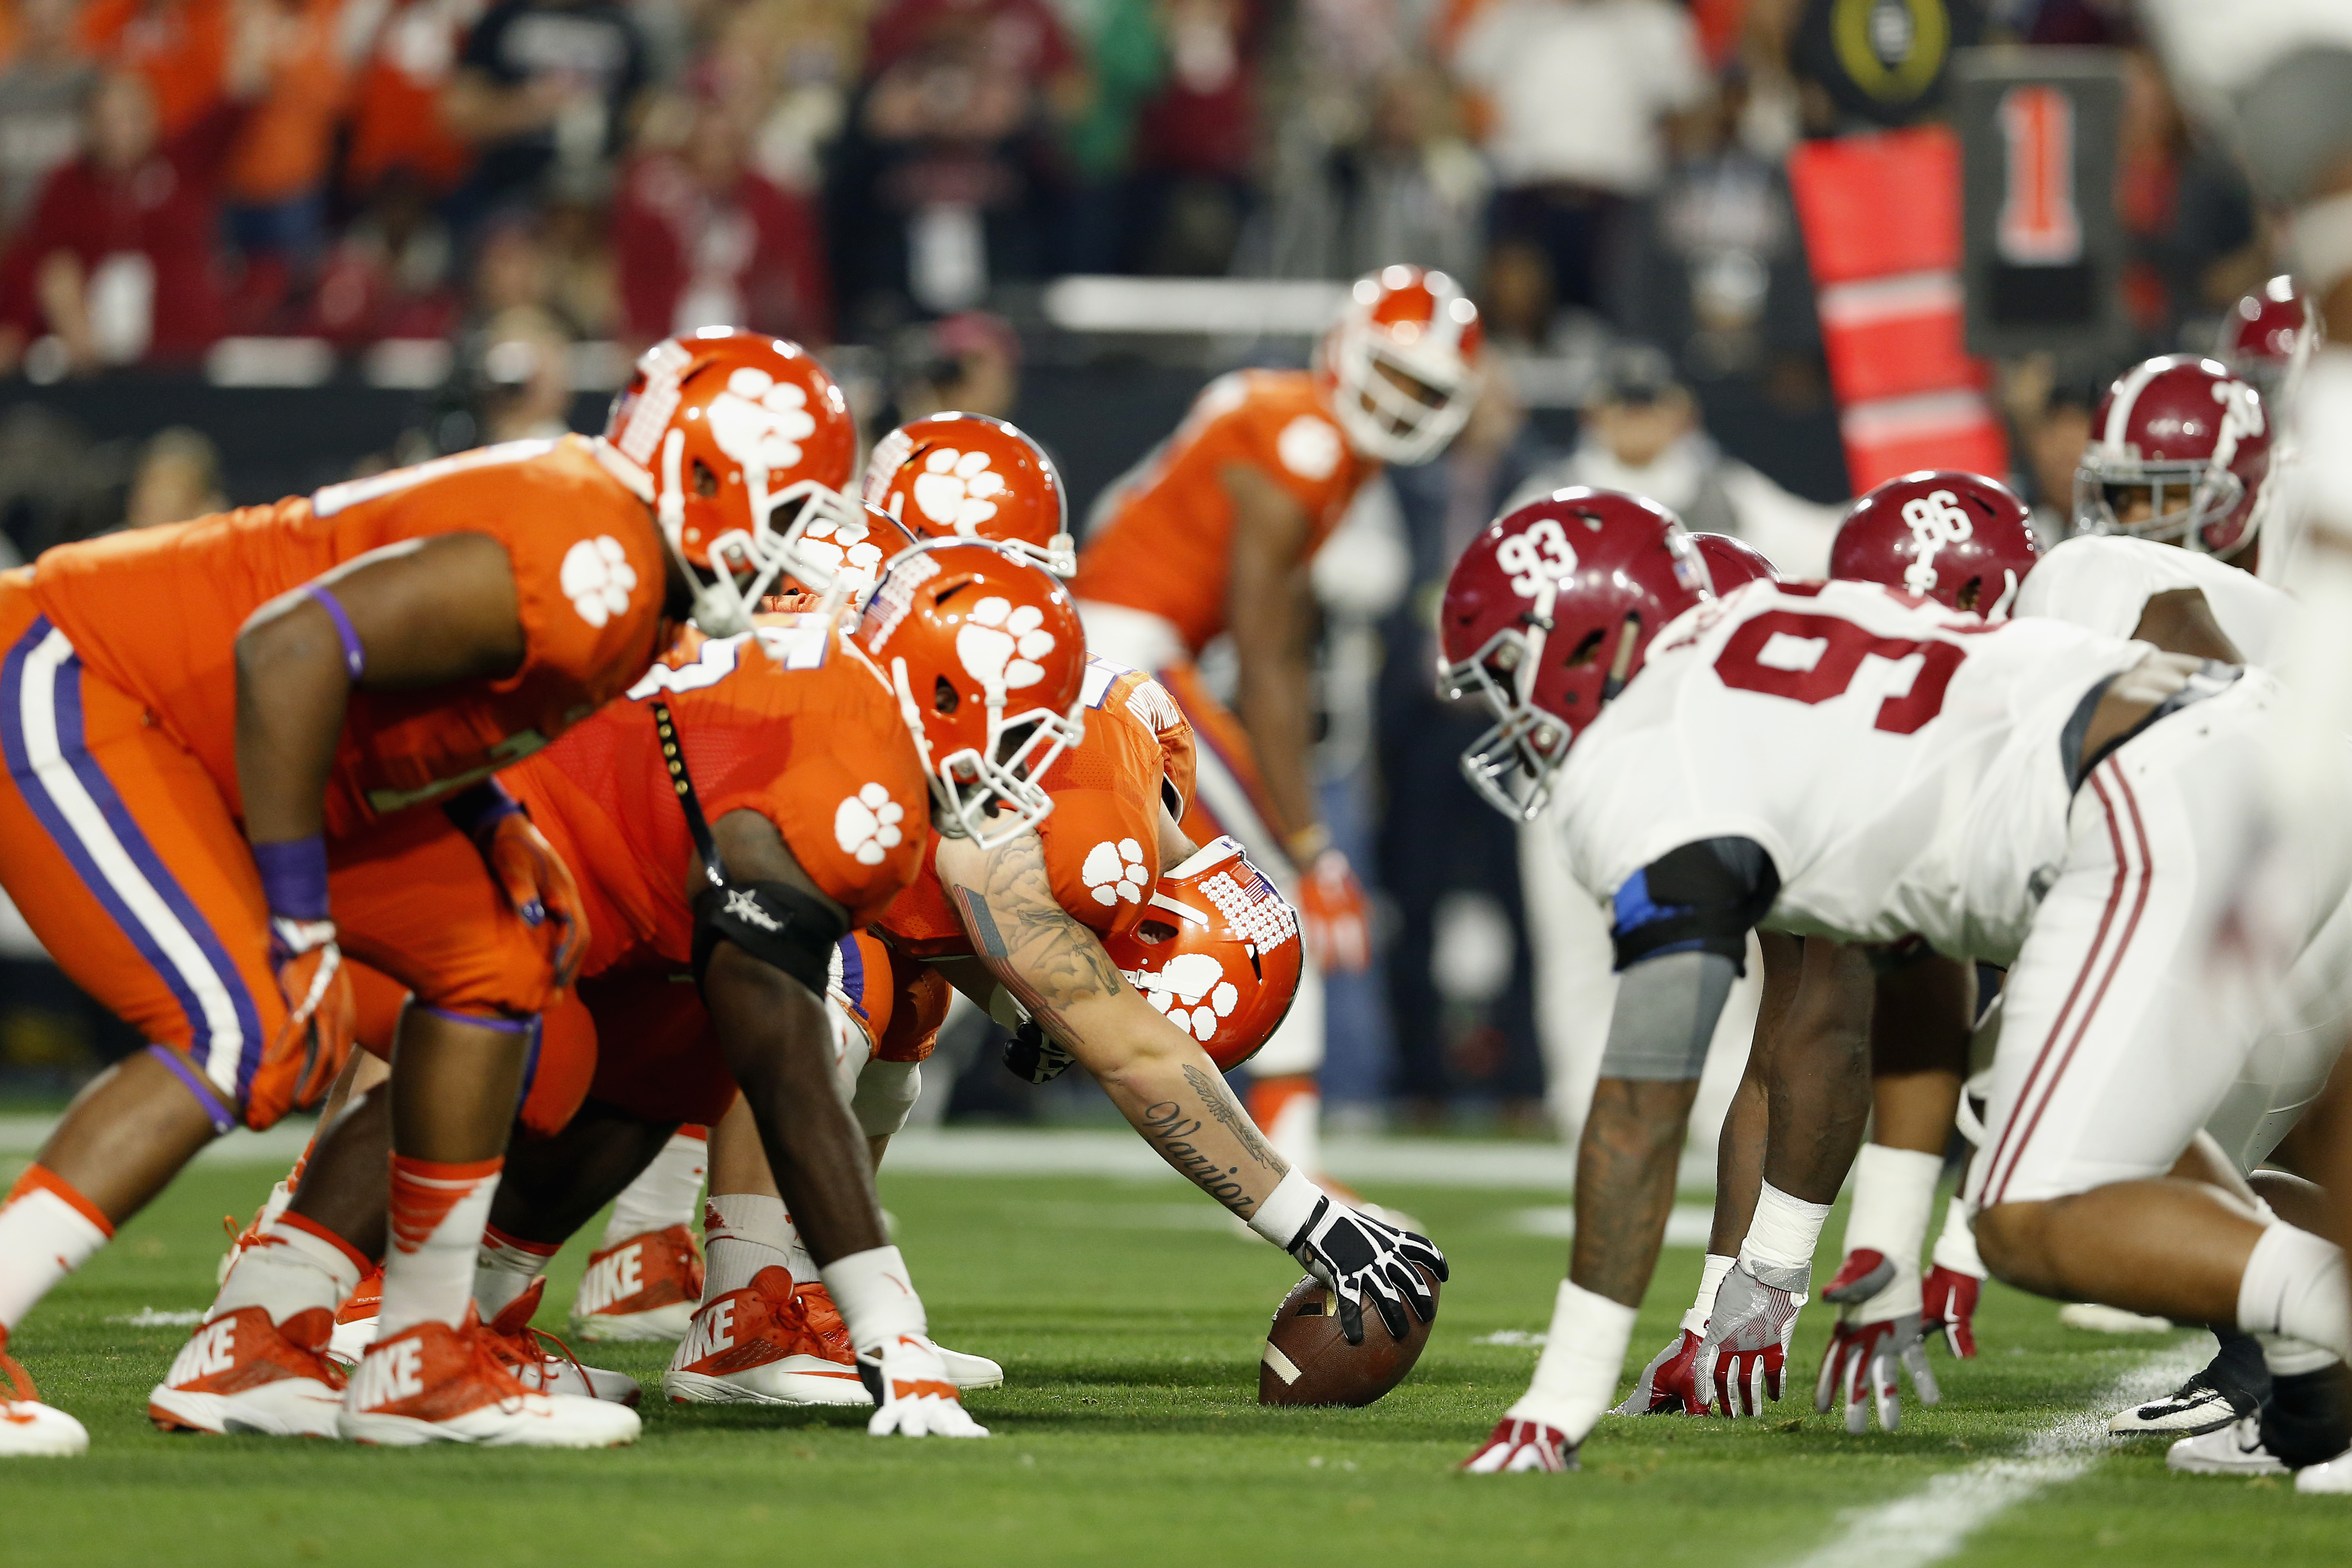 2017 College Football Predictions: College Football Playoff, Heisman